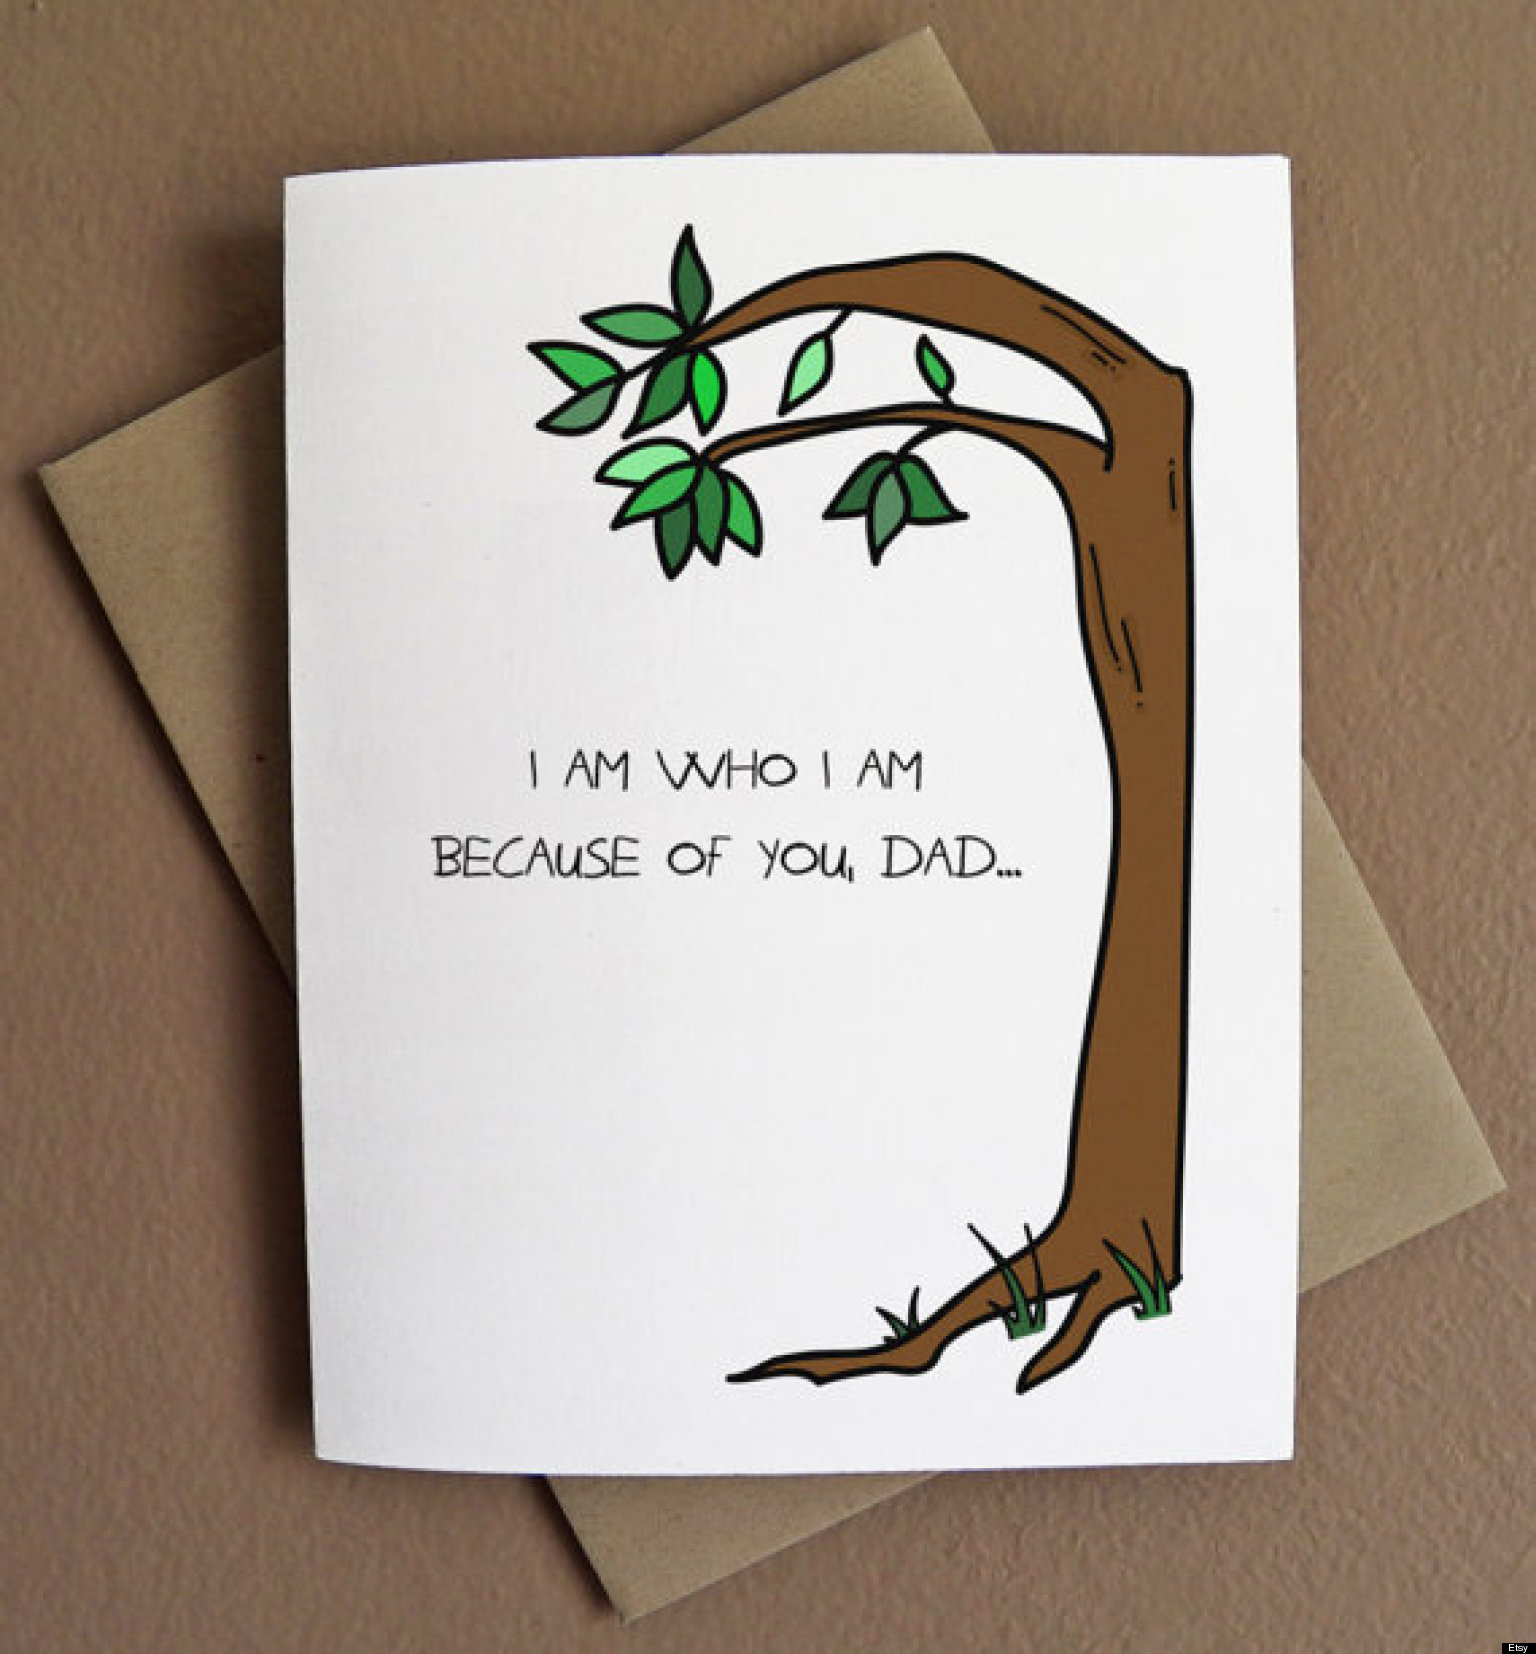 Father 39 s day cards 15 picks for dad without cliches for Creative gifts for dad from daughter